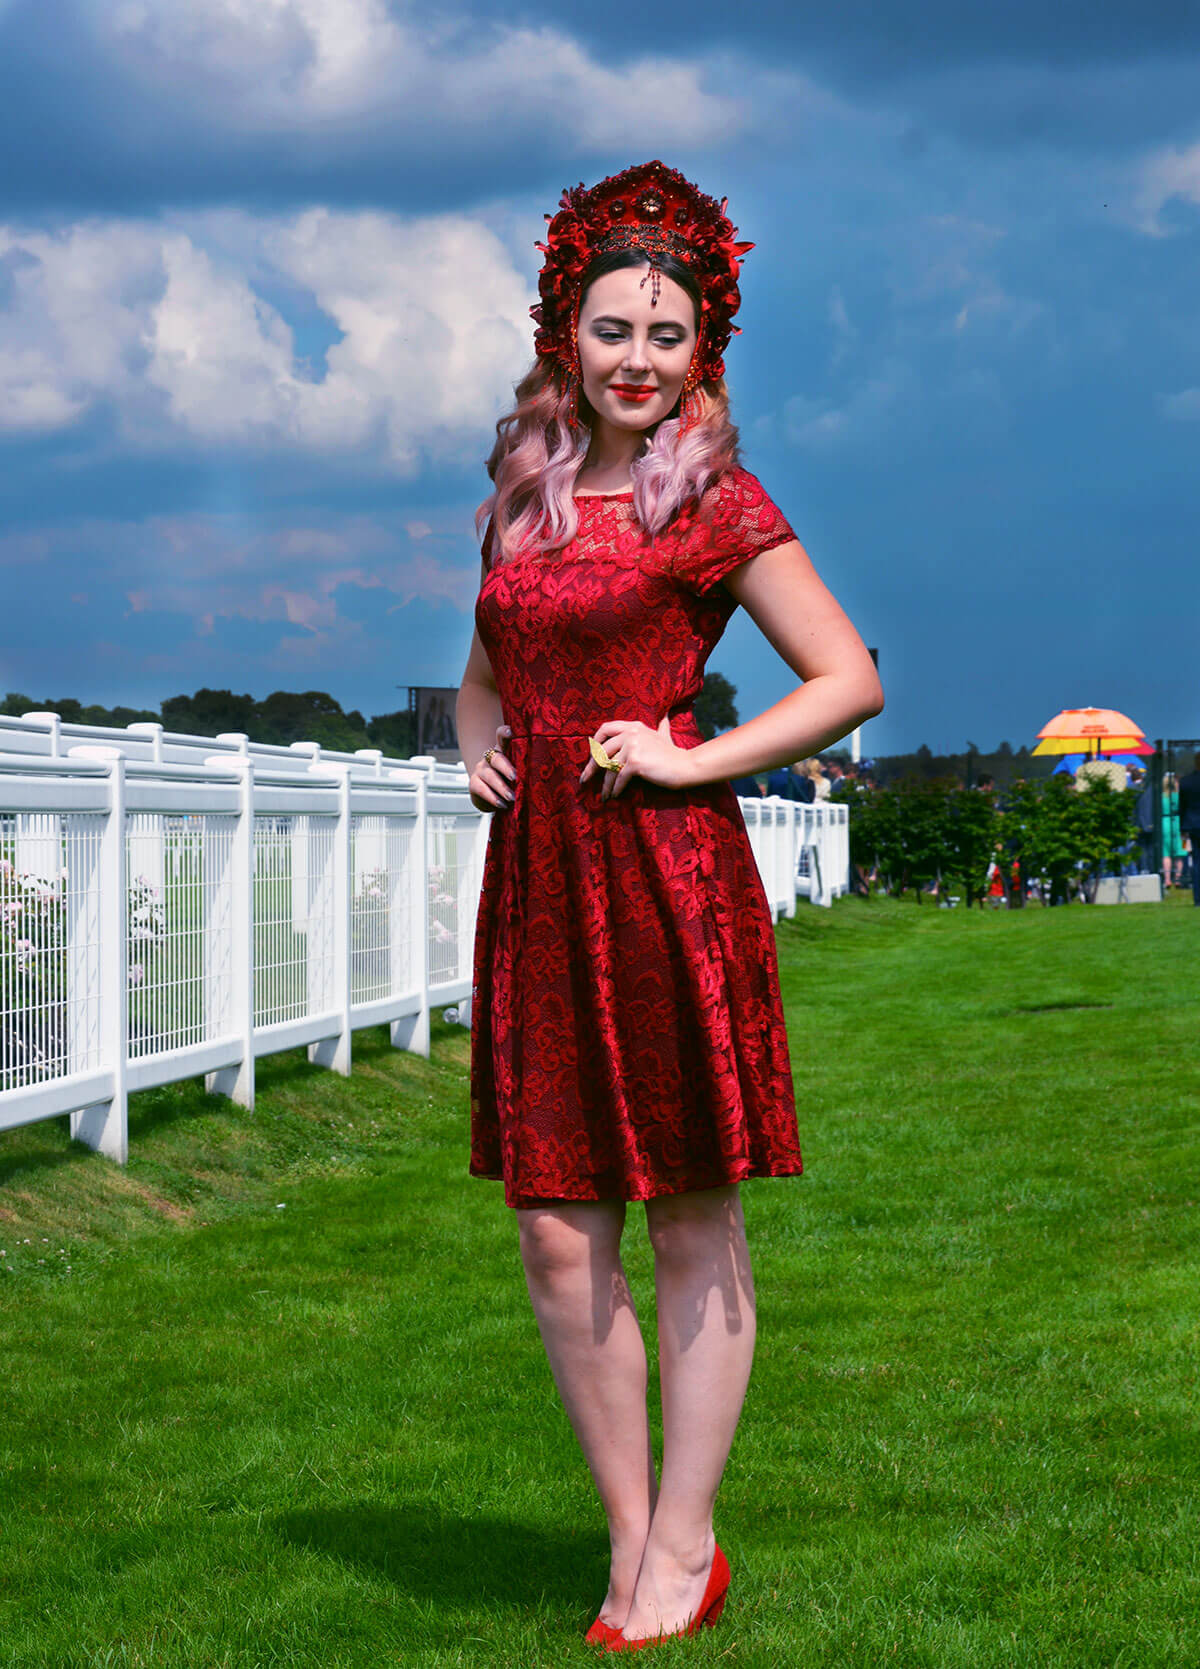 Edita at Royal Ascot in Hot Squash and Creations by Liv Free 6